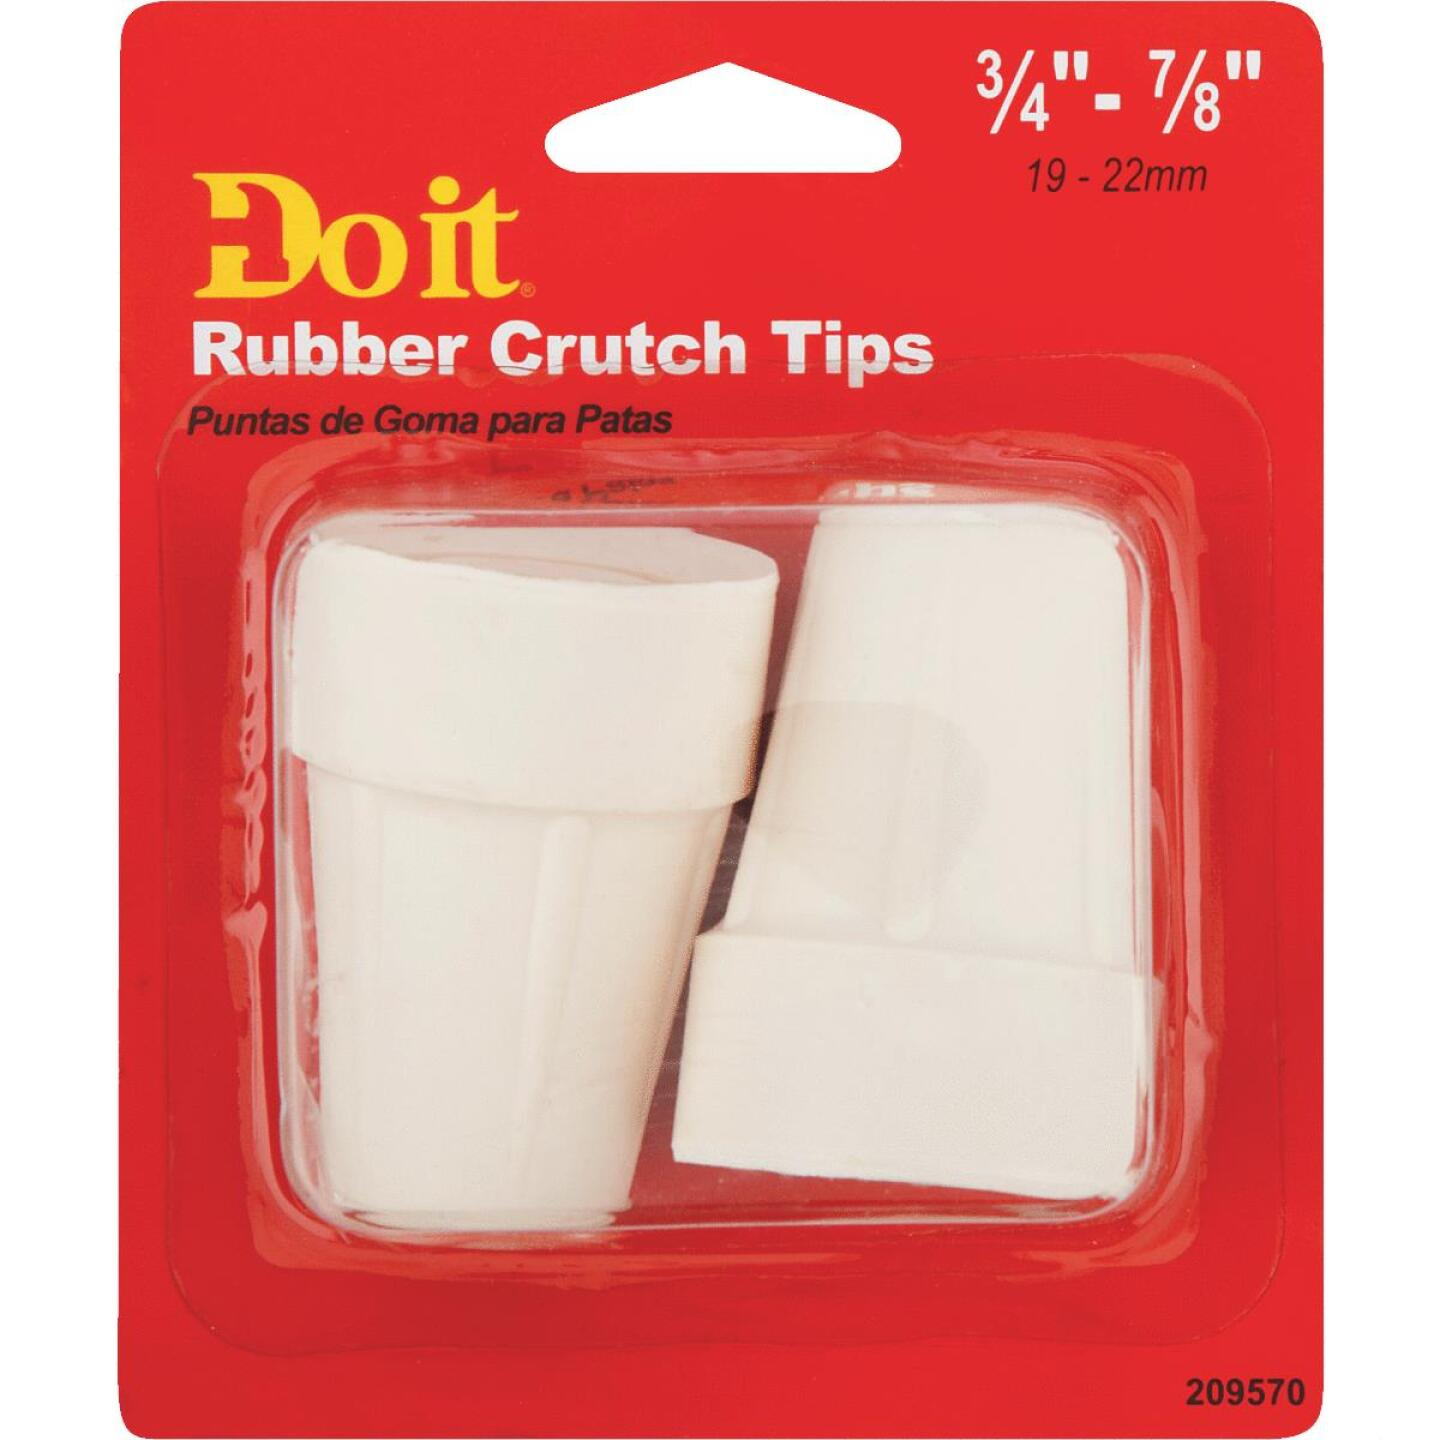 Do it Rubber Off-White 3/4 In. Crutch Tip,(2-Pack) Image 2